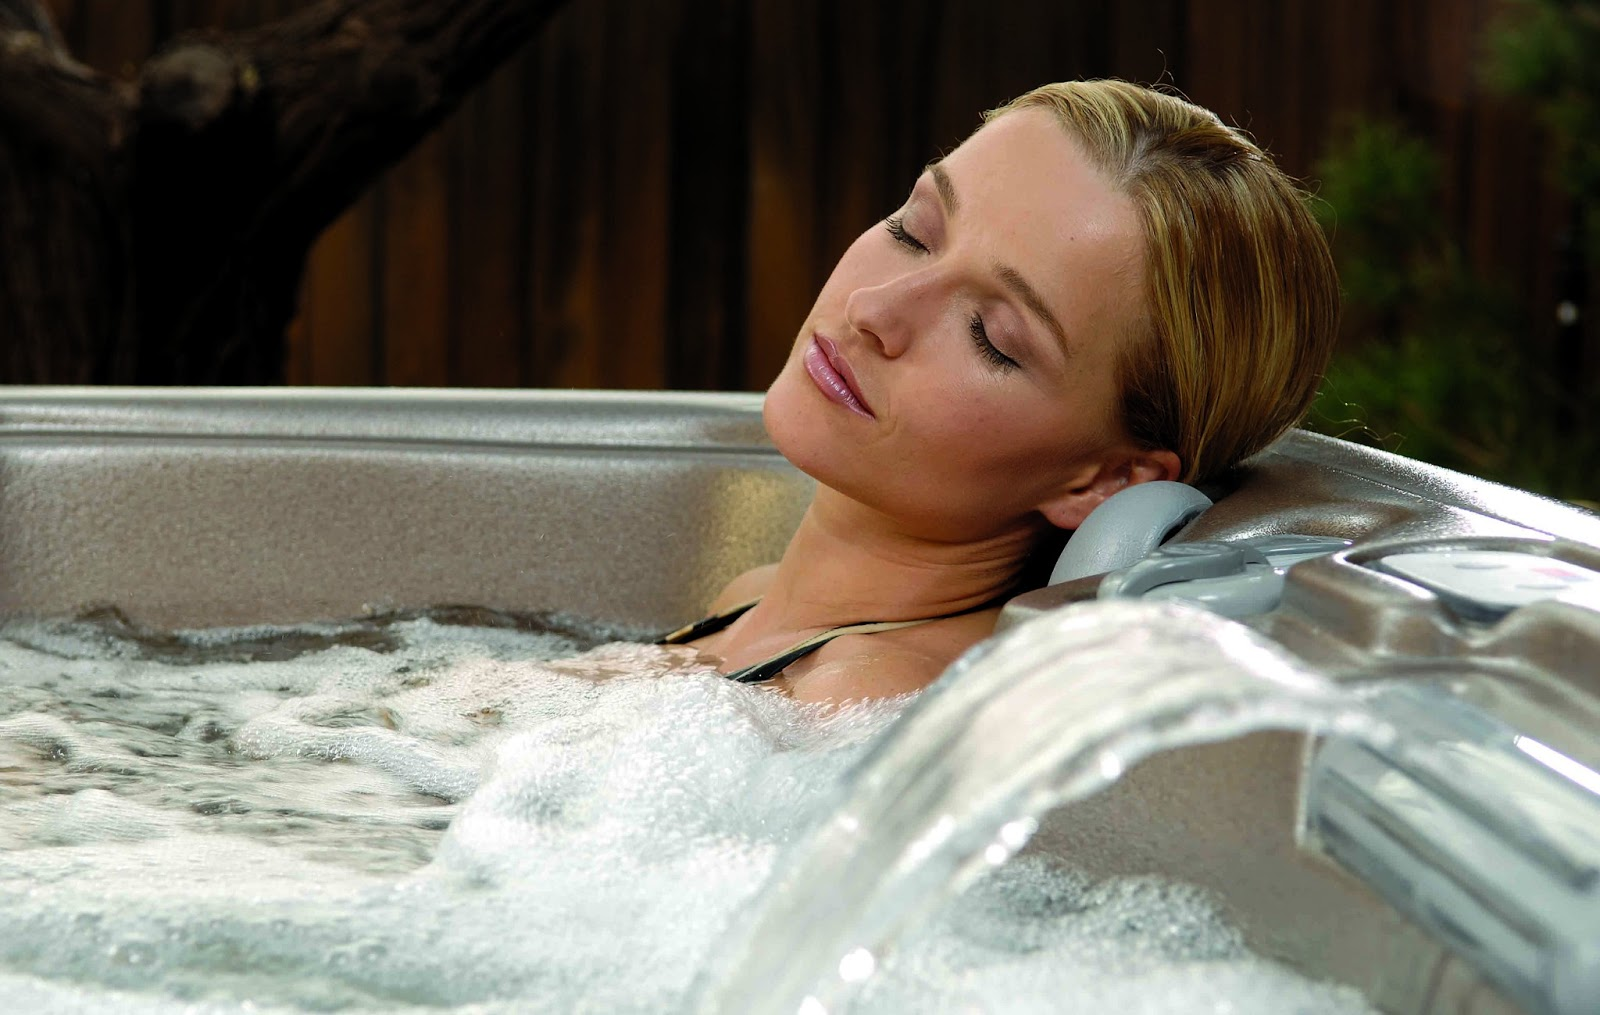 How to Relax With a Hot Bath